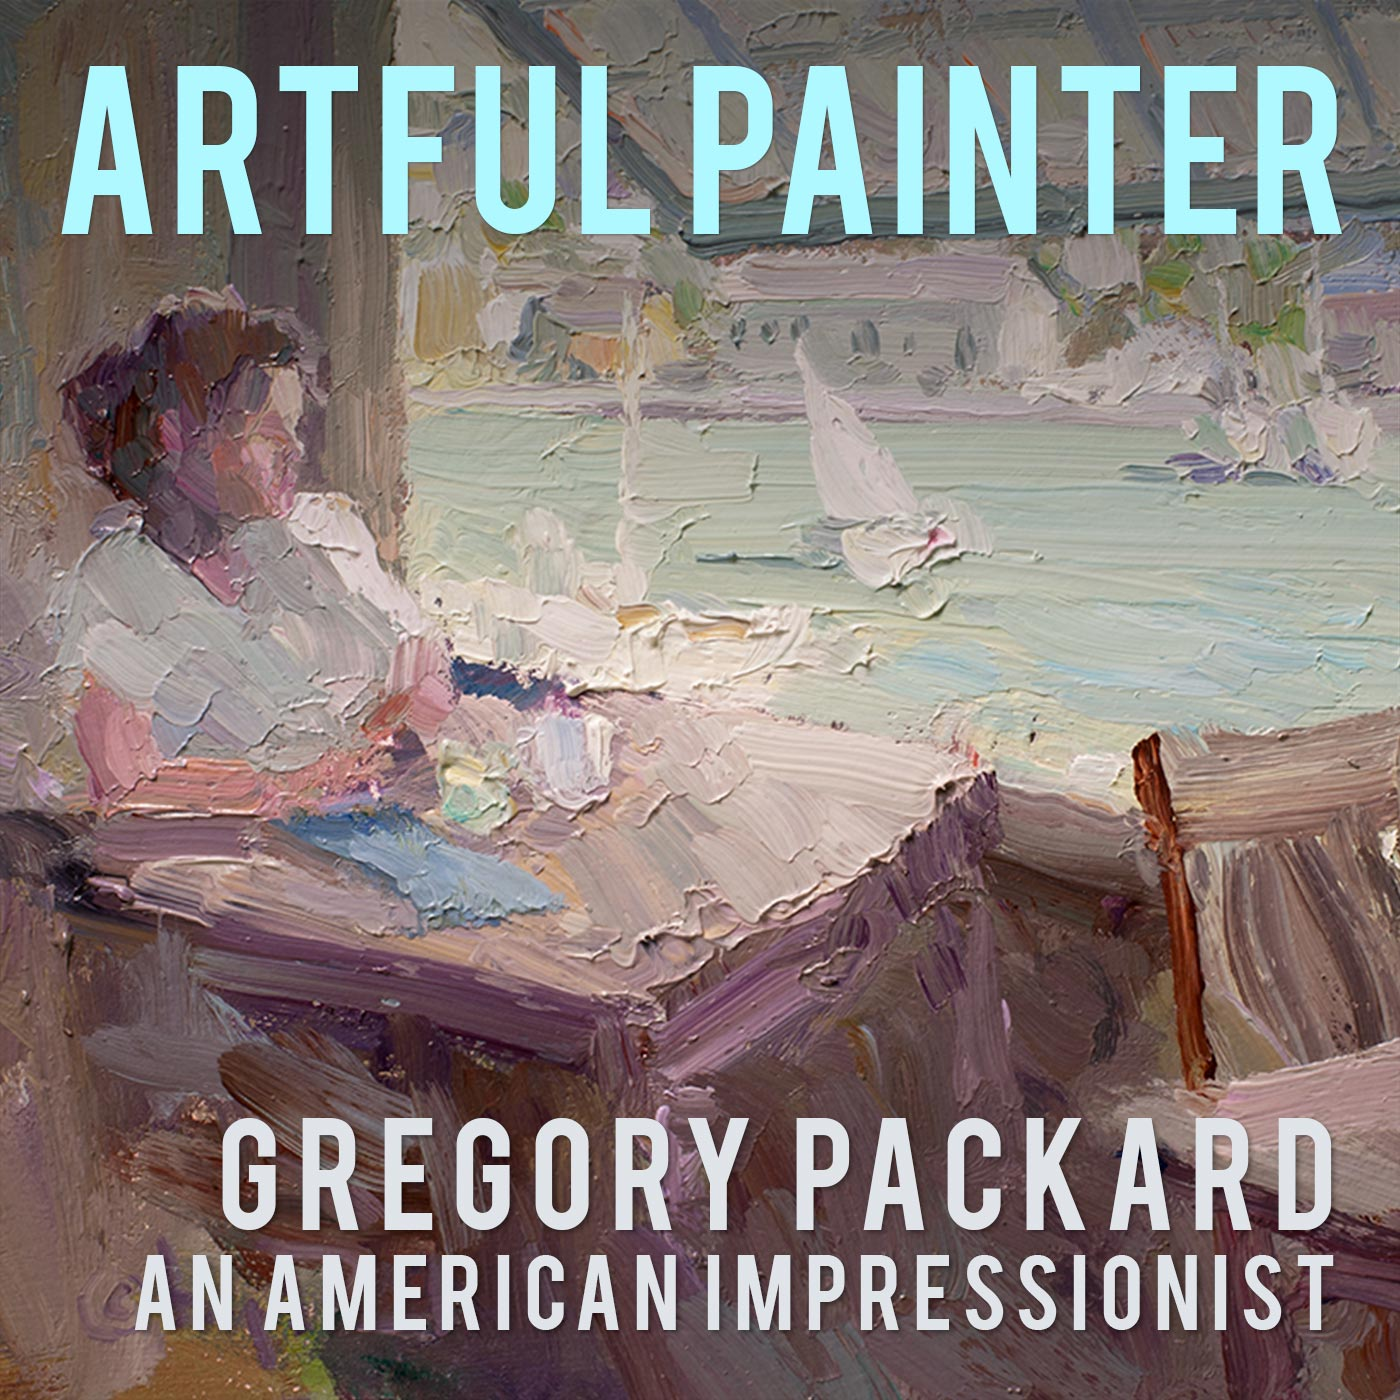 episode-thumbnail-008-gregory-packard.jpg